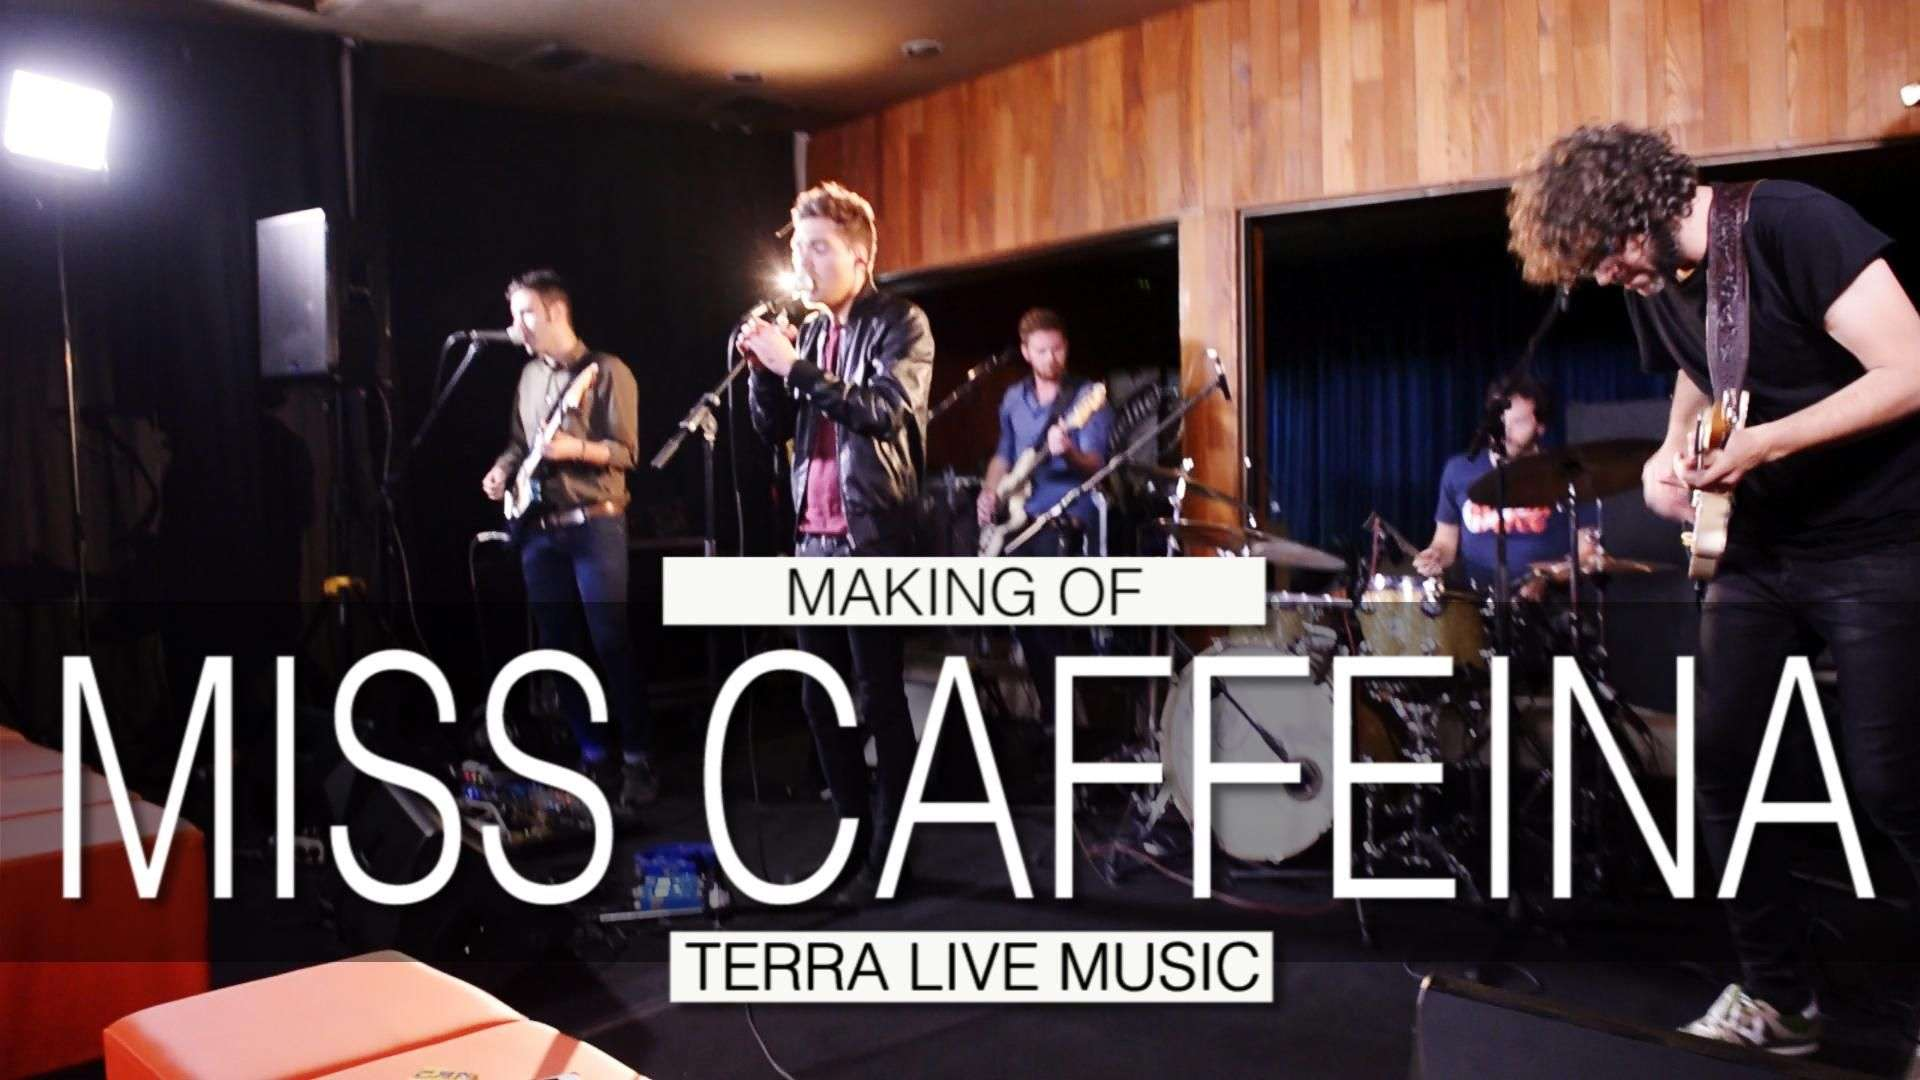 Making of de Miss Caffeina en Terra Live Music